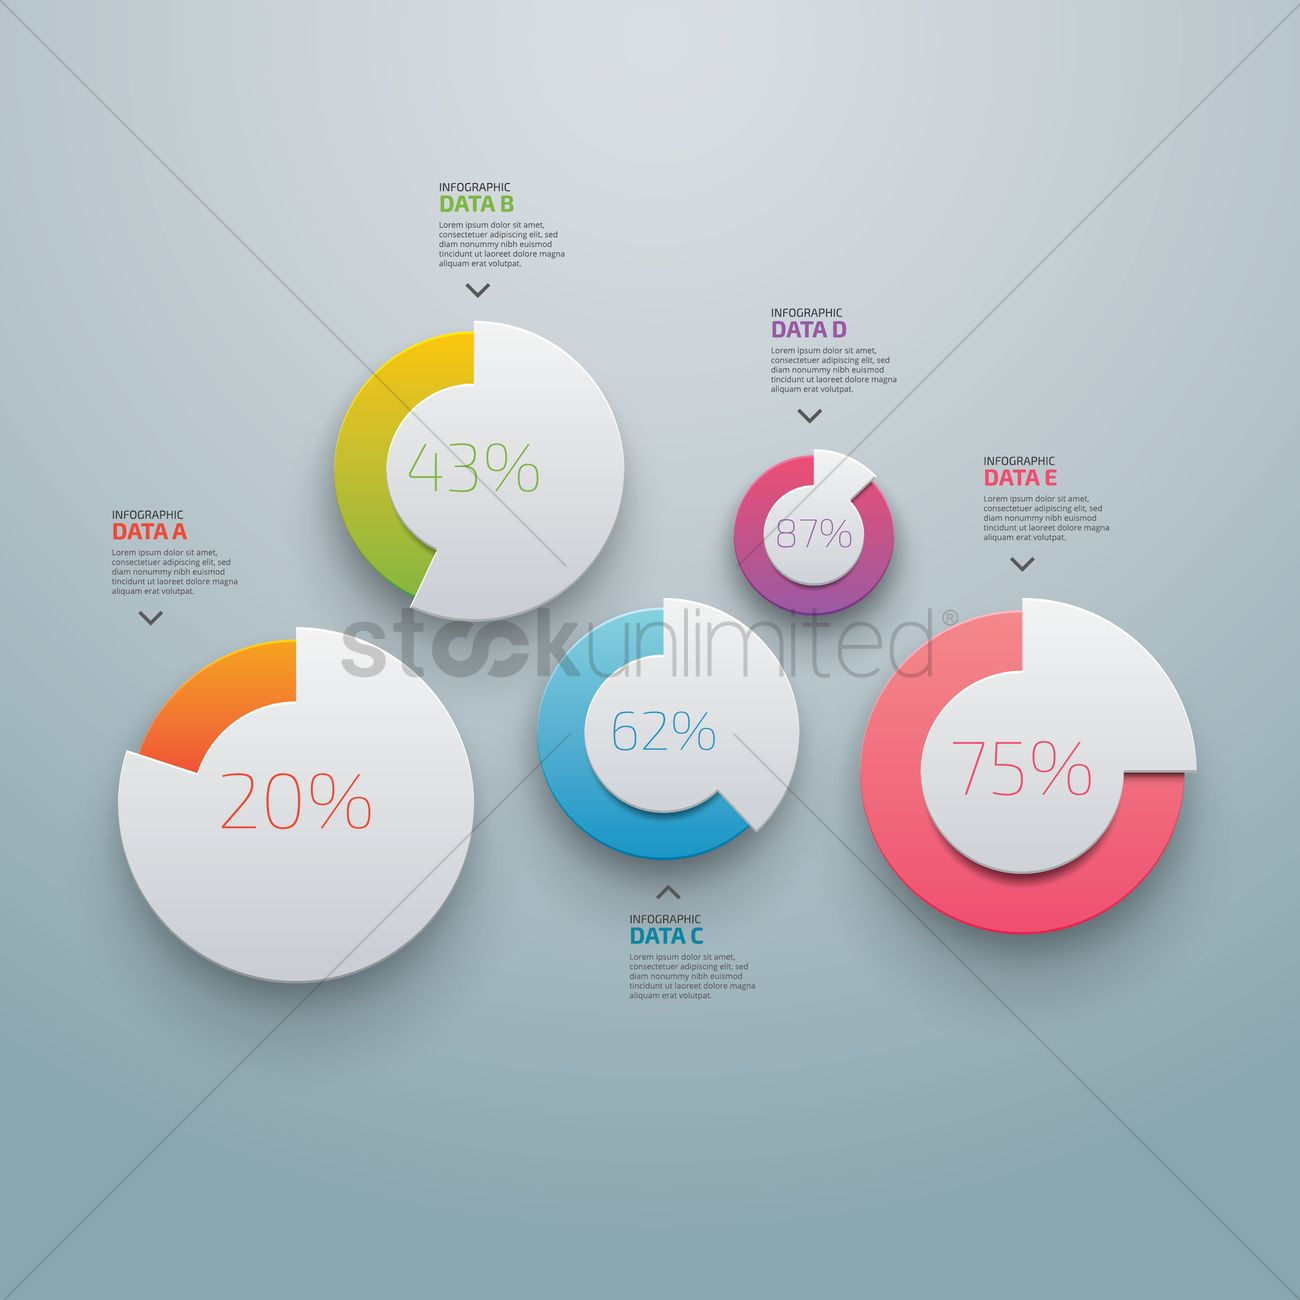 infographic design elements vector image - 1613131 | stockunlimited